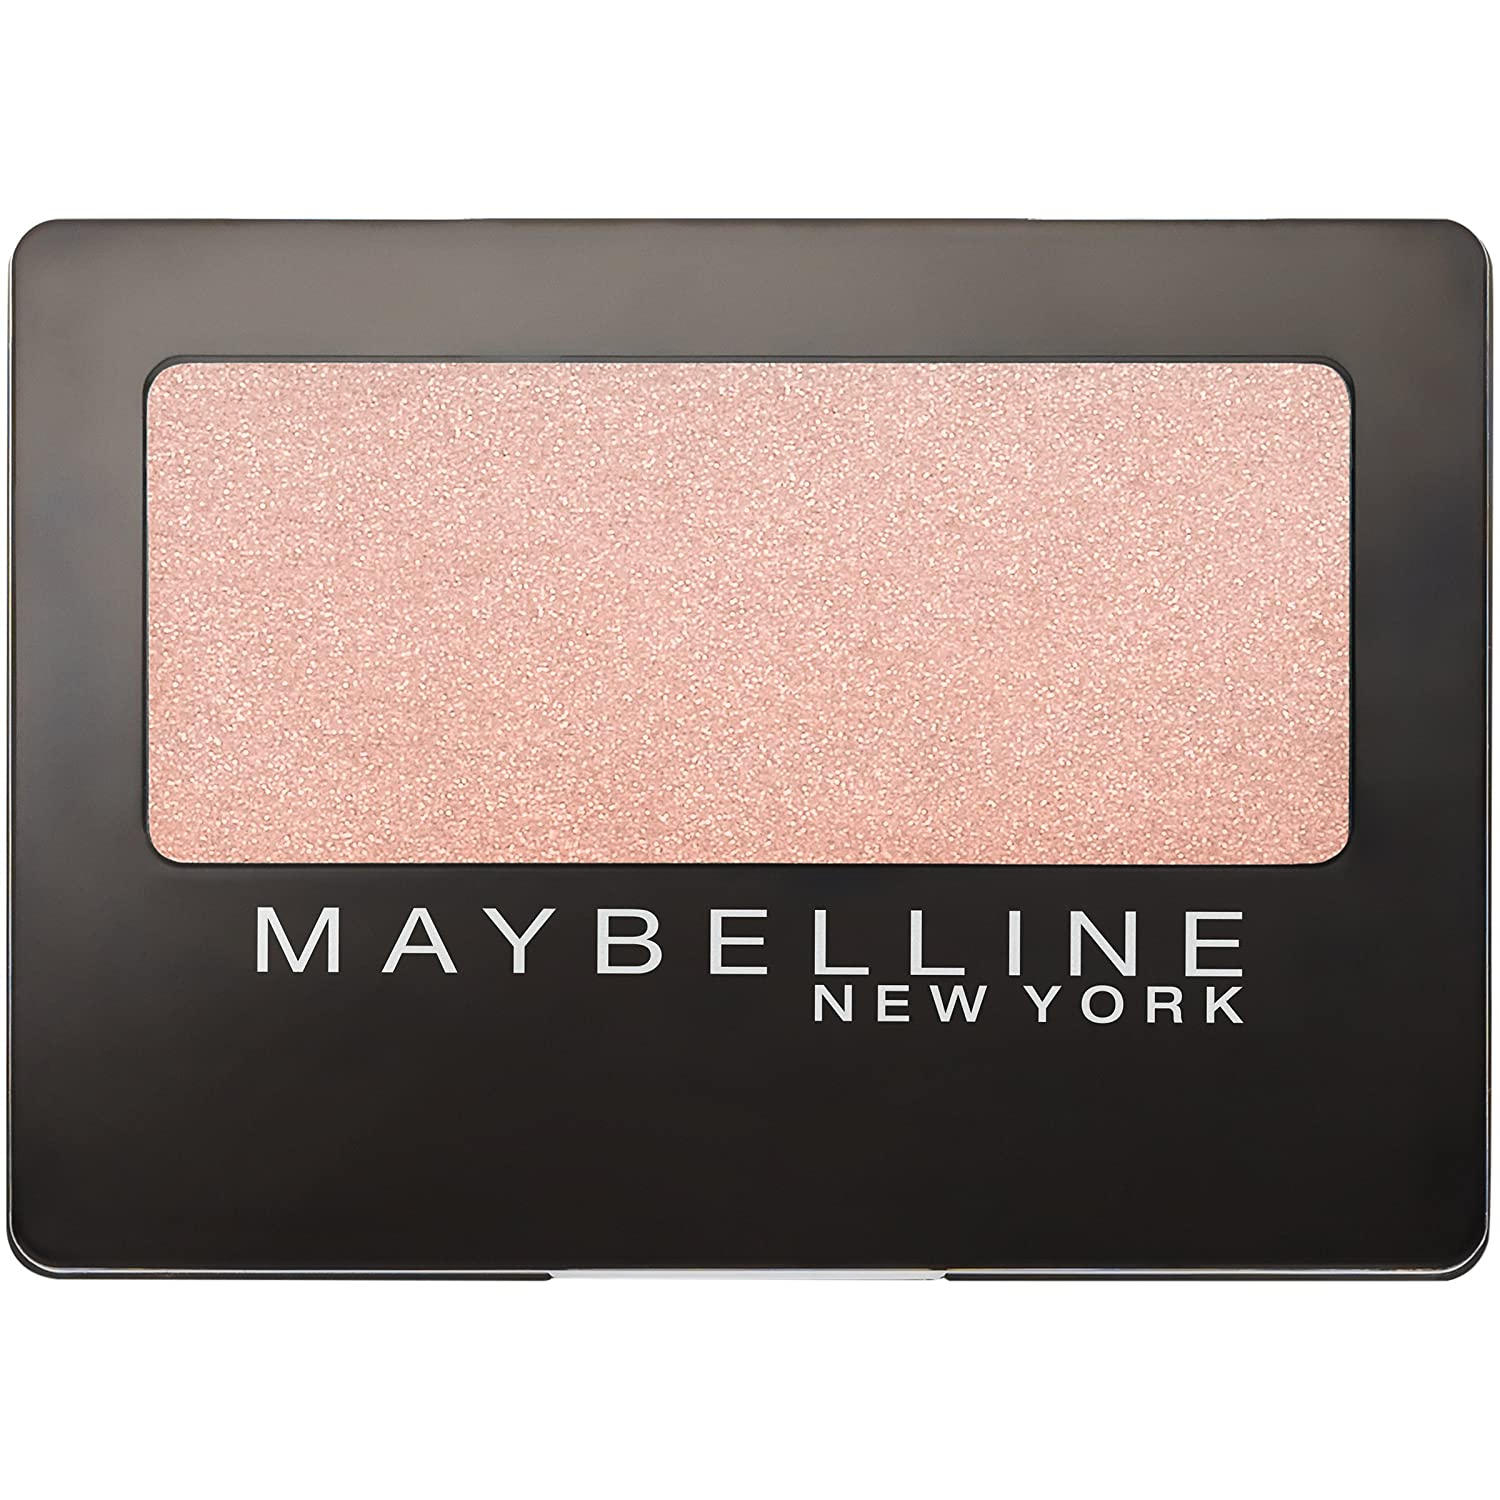 Maybelline New York Expert Wear Eyeshadow, Made for Mocha, 0.08 Ounce